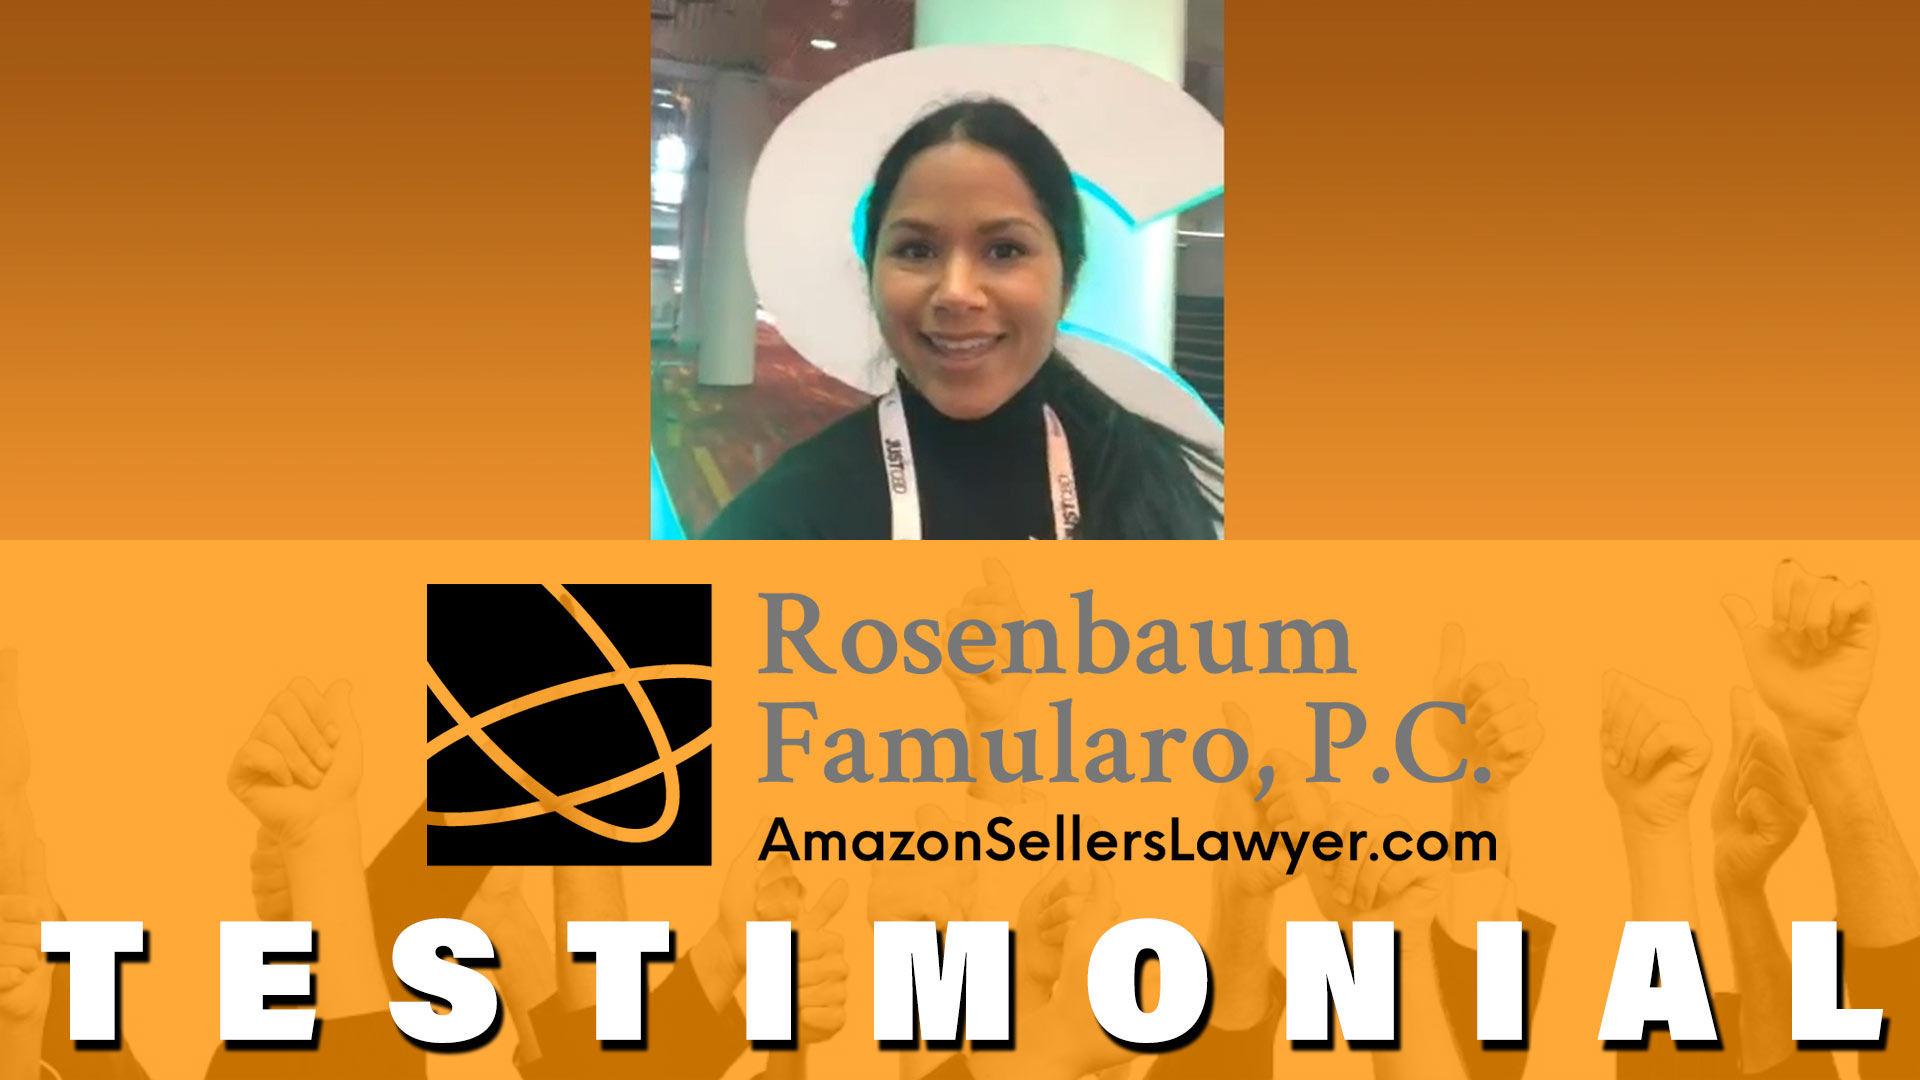 ASD market week testimonial for Amazon lawyer CJ Rosenbaum